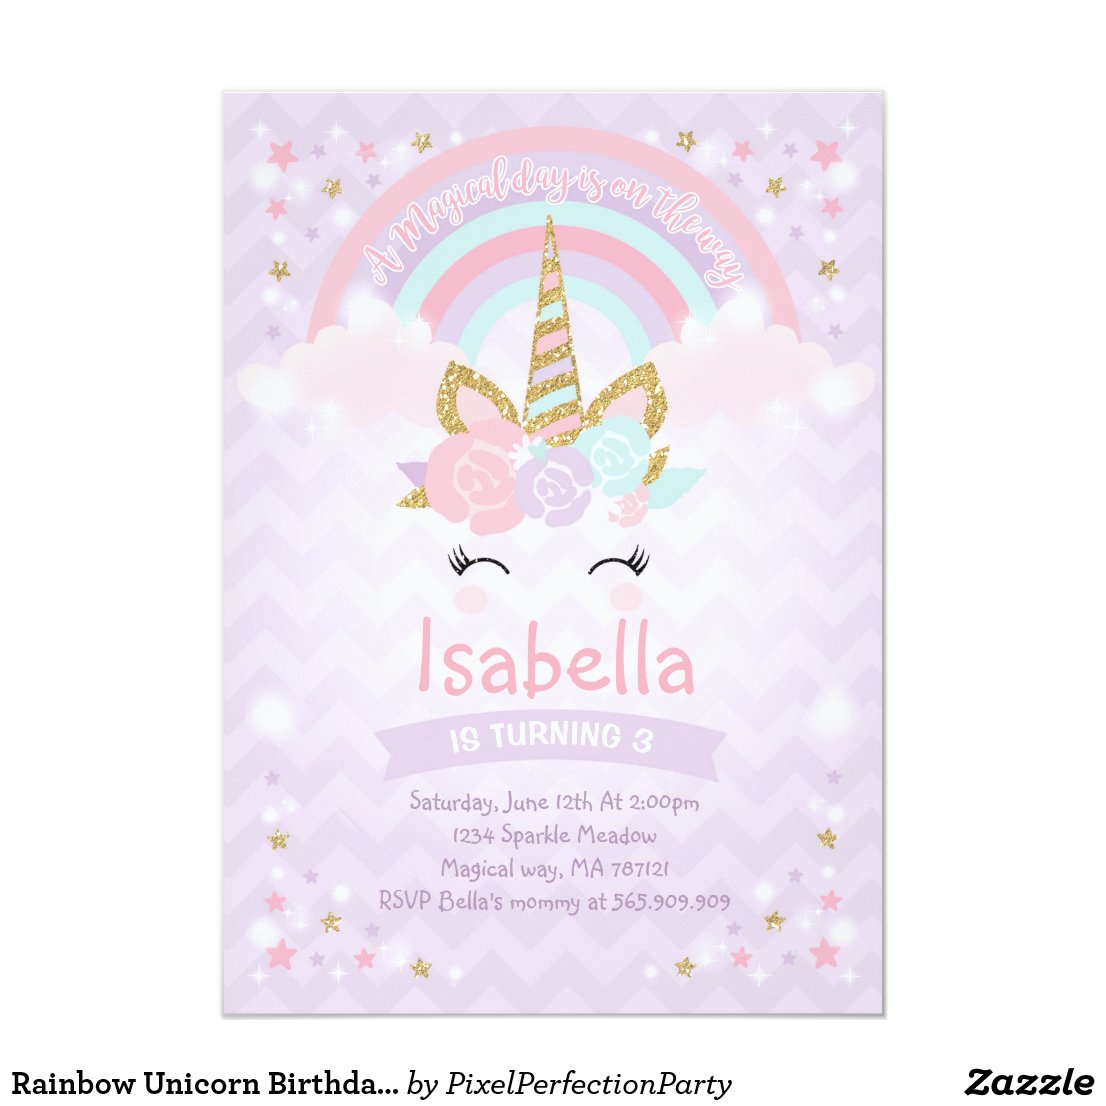 Rainbow Unicorn Birthday Invitation